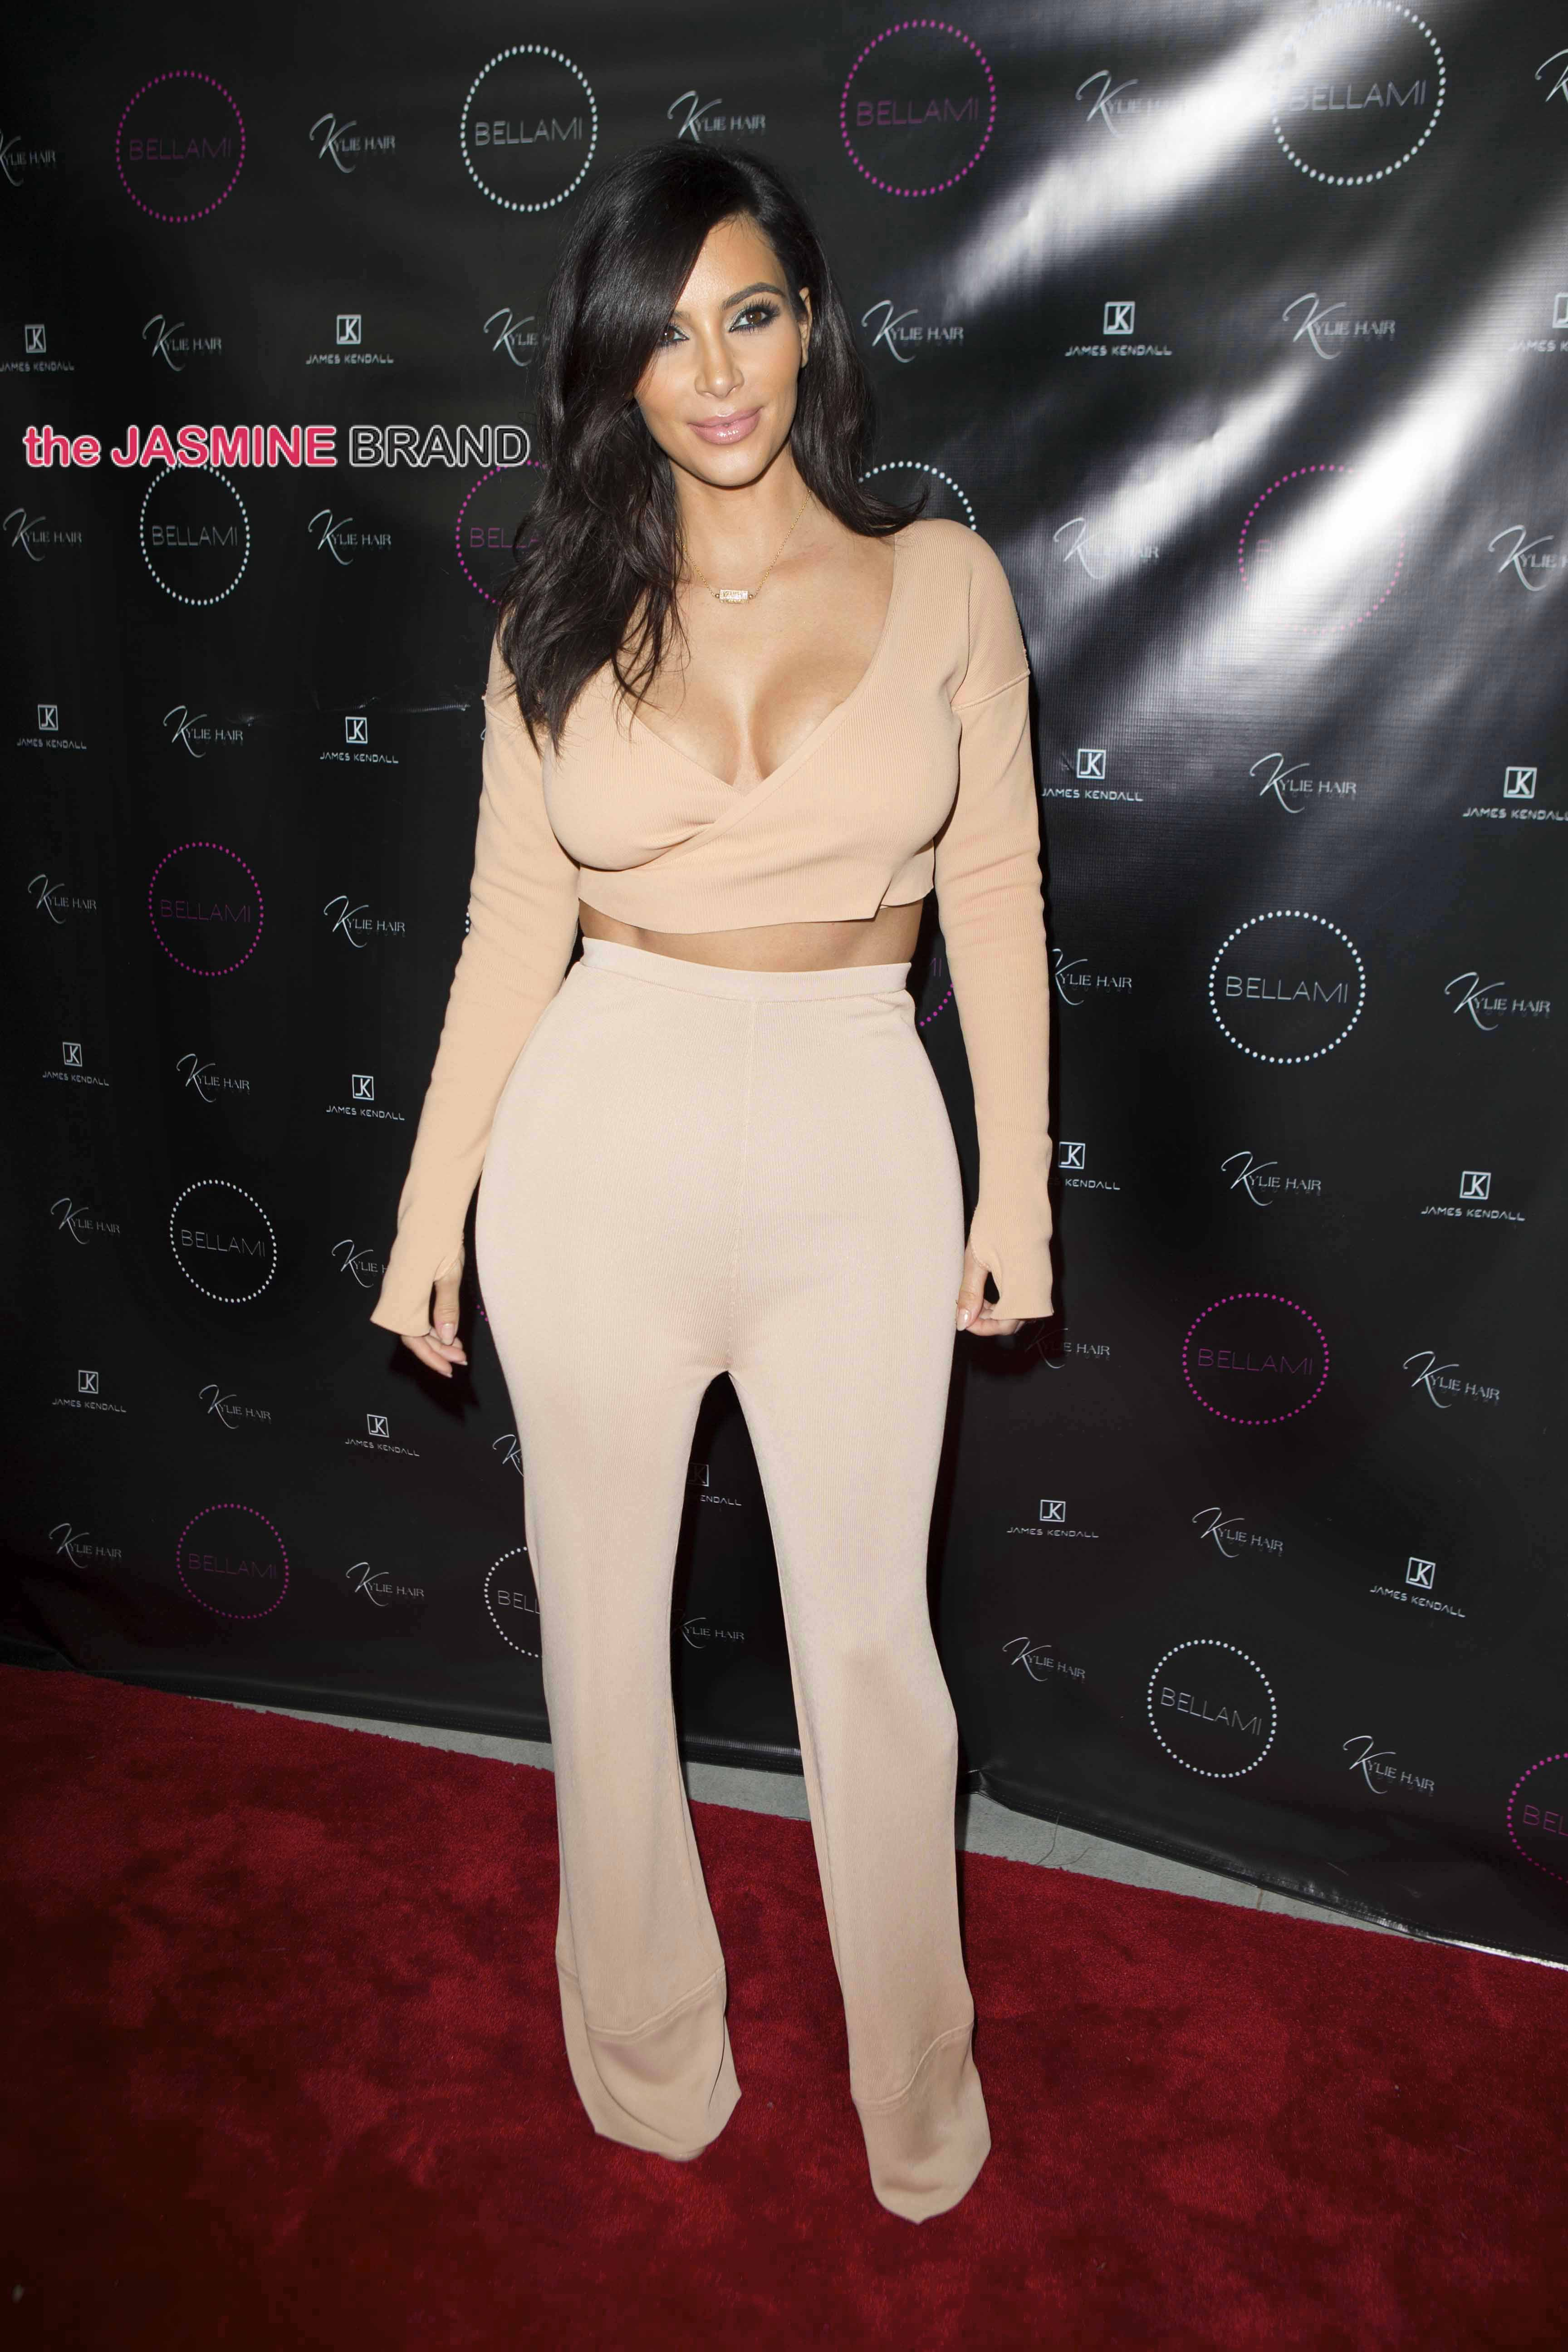 Kylie Jenner poses happily with her sisters on her big hair line extension night launch party LA